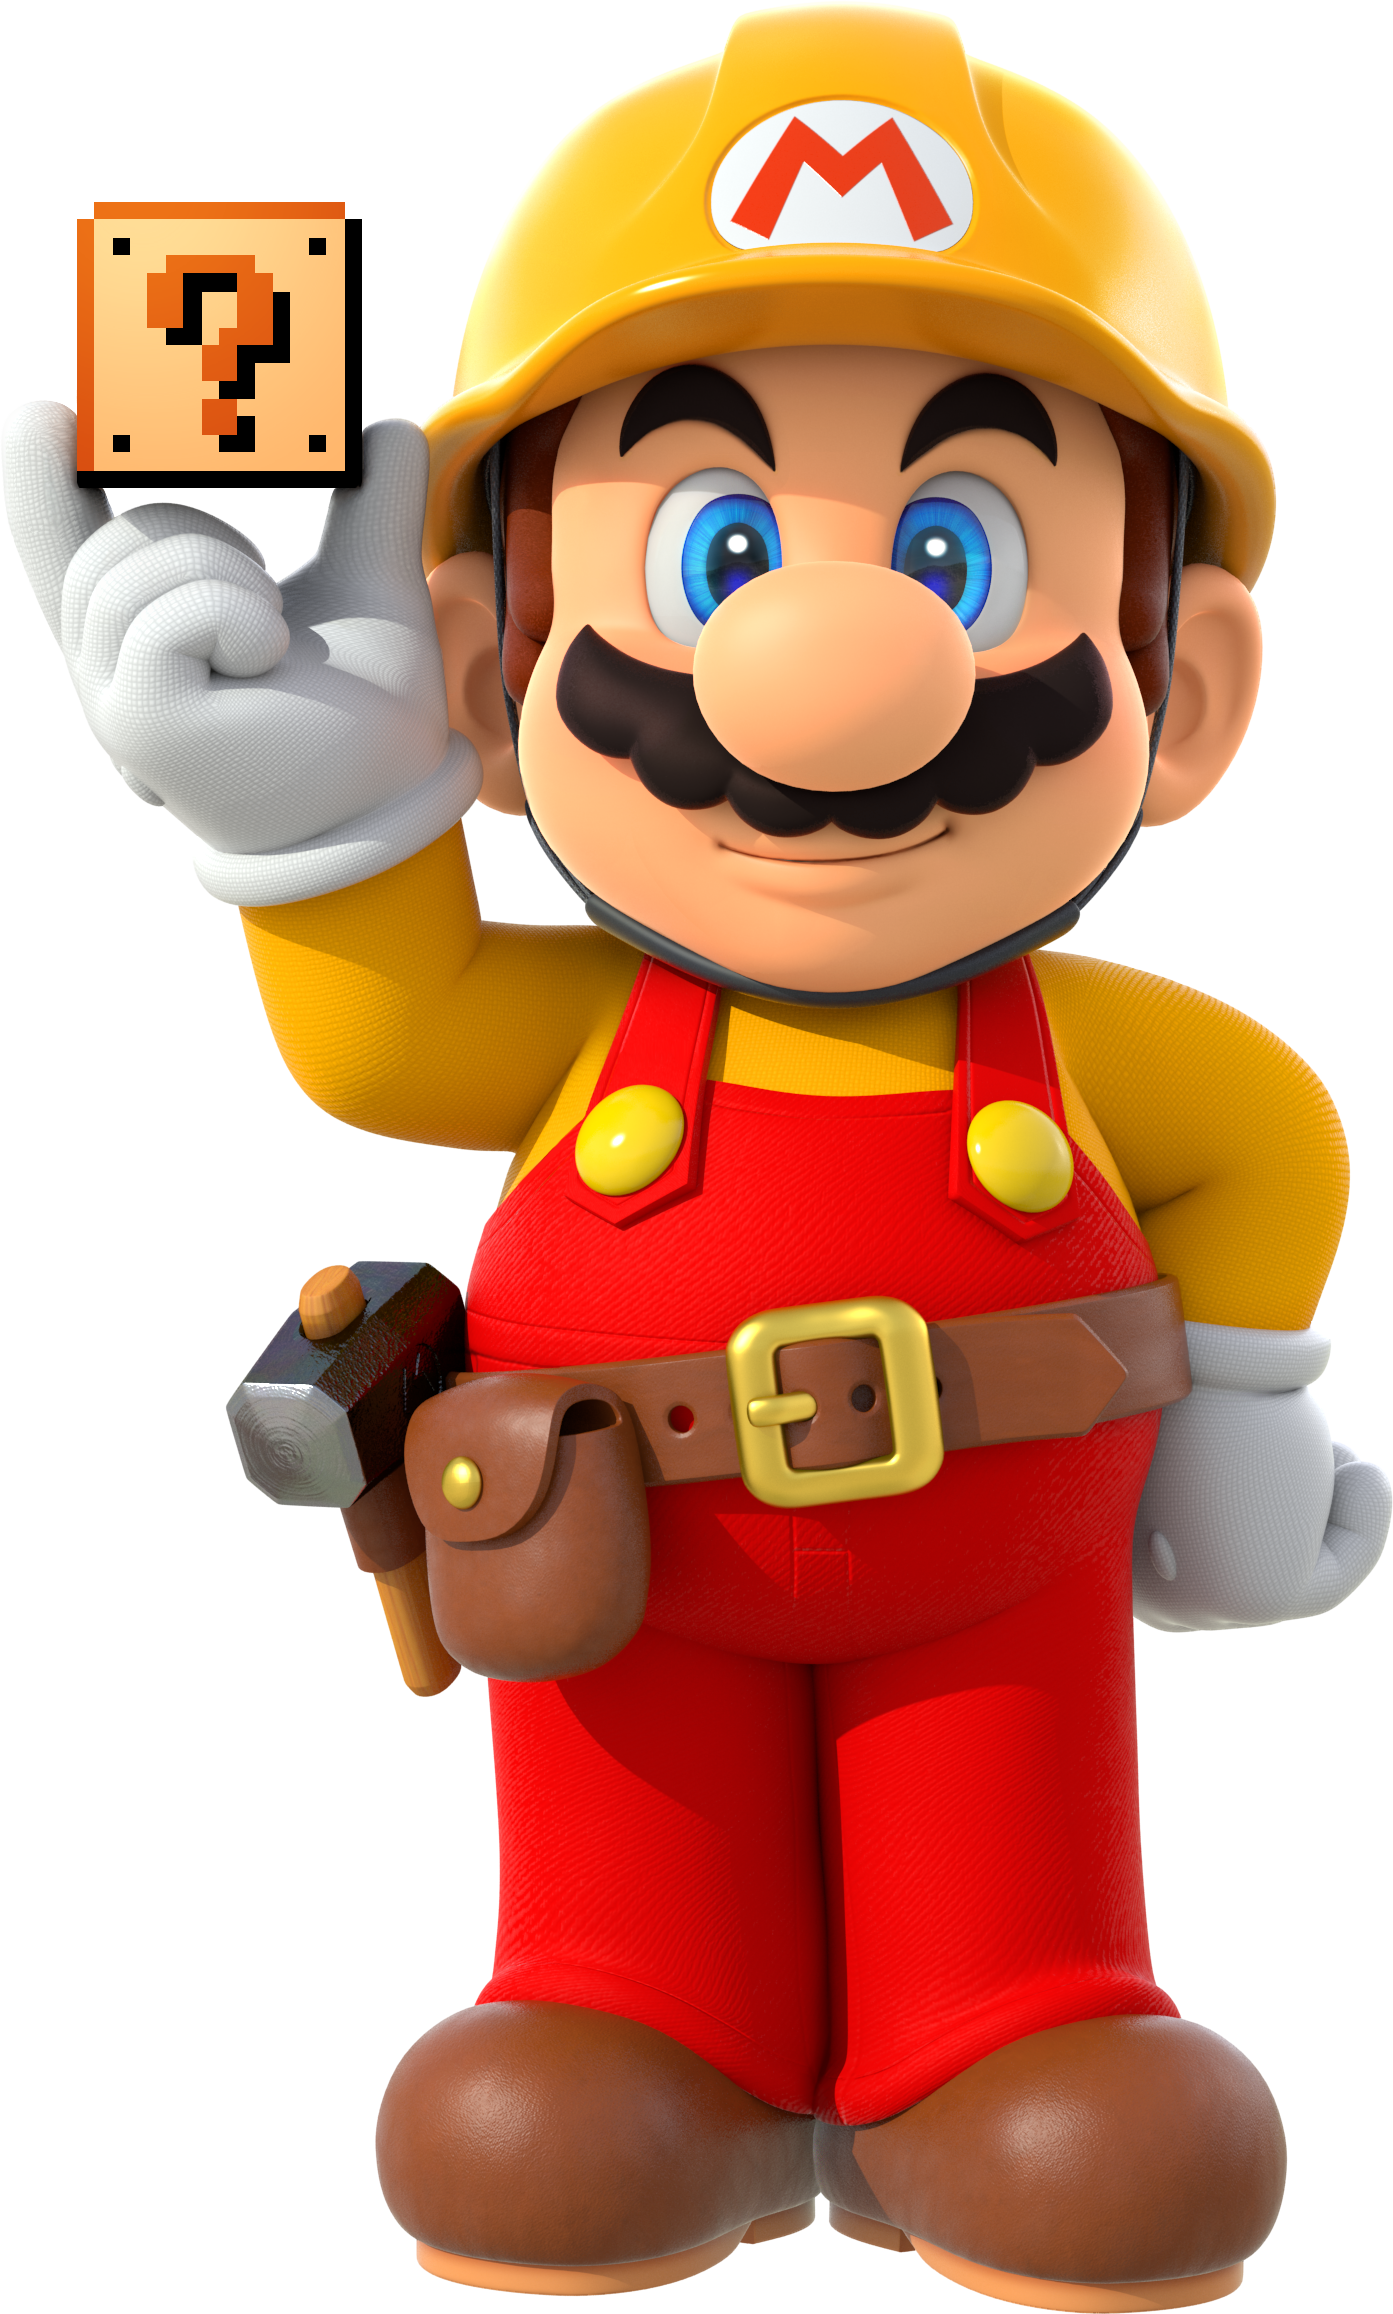 Toy Bros Mario Figurine Super Maker PNG Image